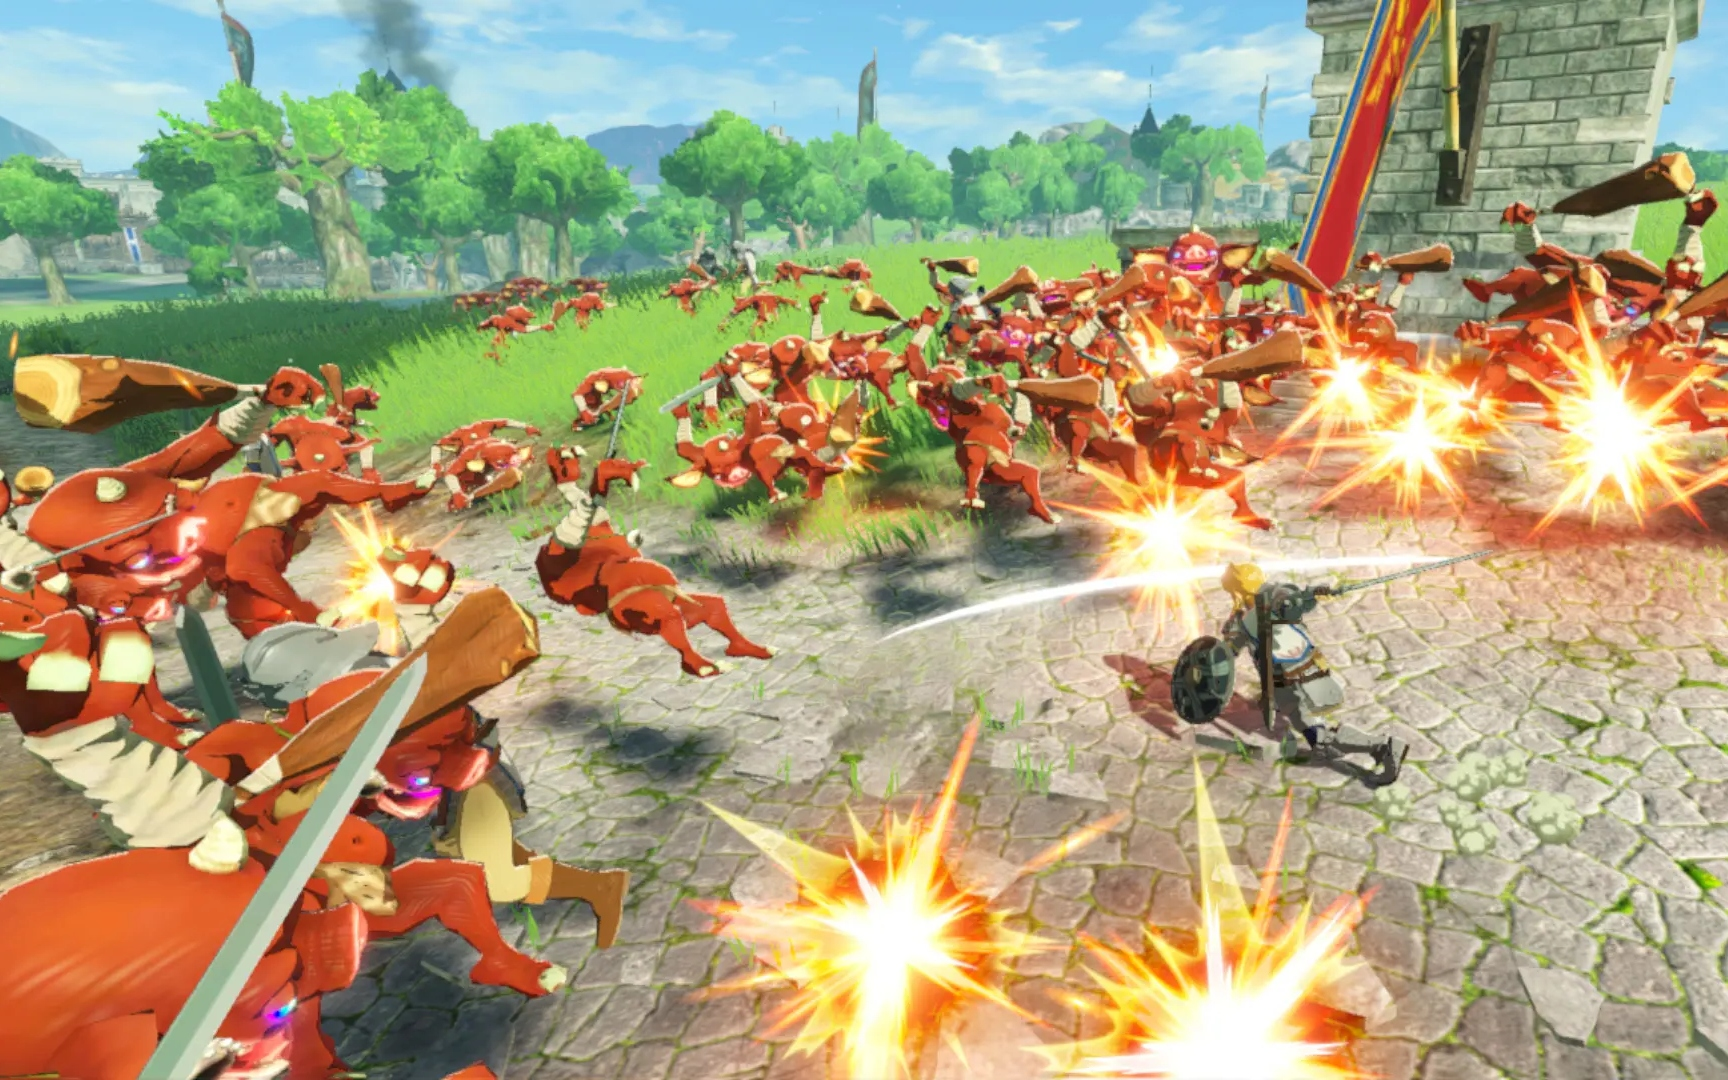 Hyrule Warriors: Age of Calamity' is a hack-and-slash 'Breath of the Wild' prequel | Engadget